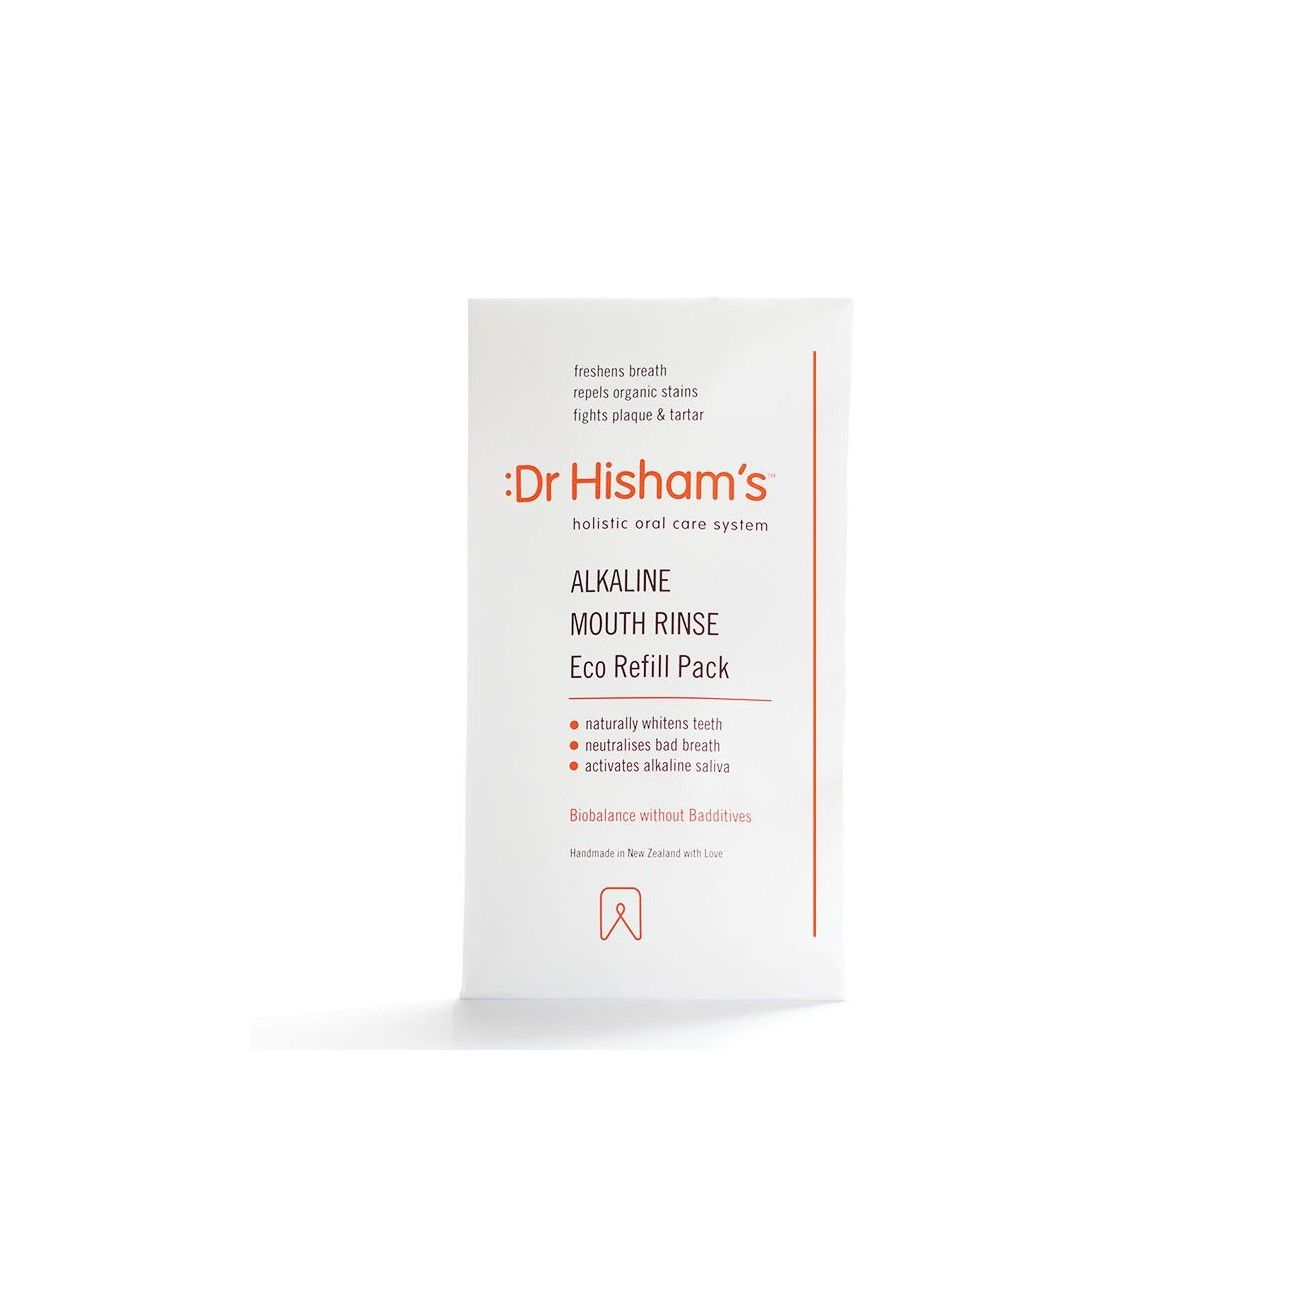 Dr Hisham's Alkaline Mouth Rinse 500ml